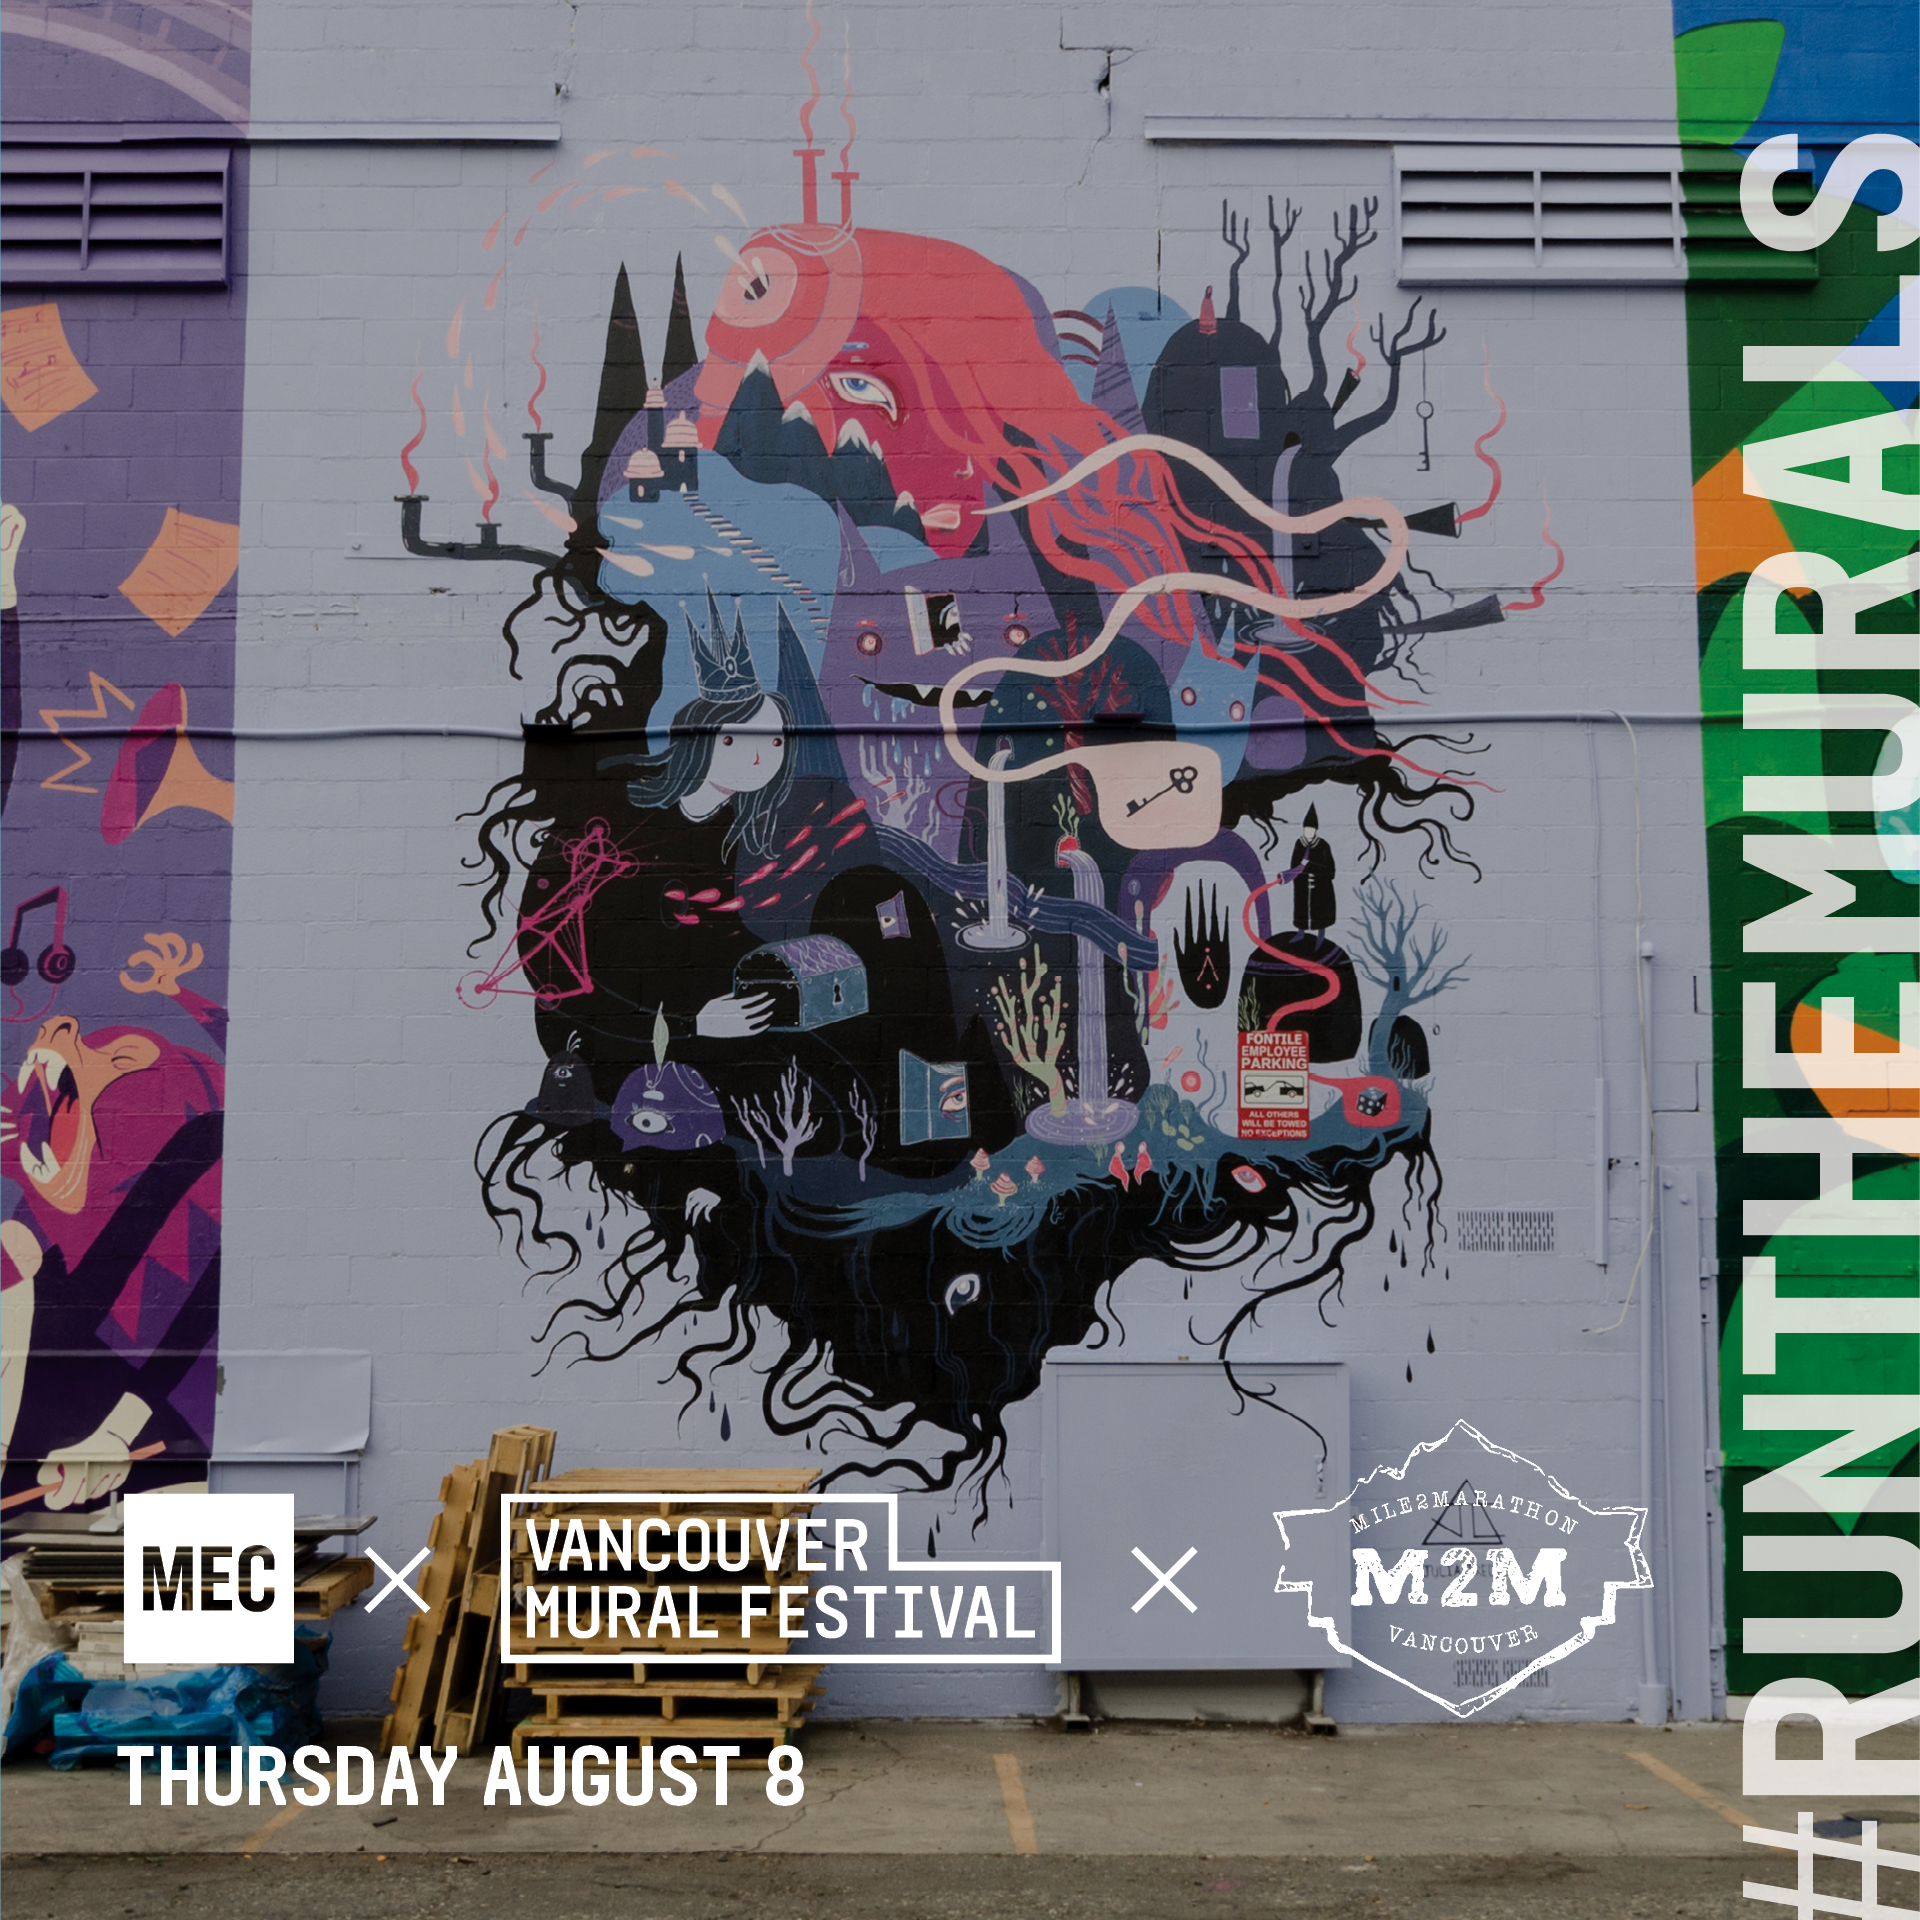 Cost: FREE   MEC and Vancouver Mural Fest have partnered up to create a unique running experience called #RunTheMurals. Together we have curated a running route that highlights some of the city's best public art.  Join MEC and  Mile2Marathon  on Thursday, August 8th for an ~7K socail run that explores the beautiful streets and alleyways of Mount Pleasant and discover the art and culture that is right here in our backyard. Post-run we will be hanging out at the legendary Brewhall for some light snacks and give-aways!  This run is not a usual Mile2Marathon workout run, instead it is inteaded as a fun/social run.  Register here:  https://events.mec.ca/node/268276